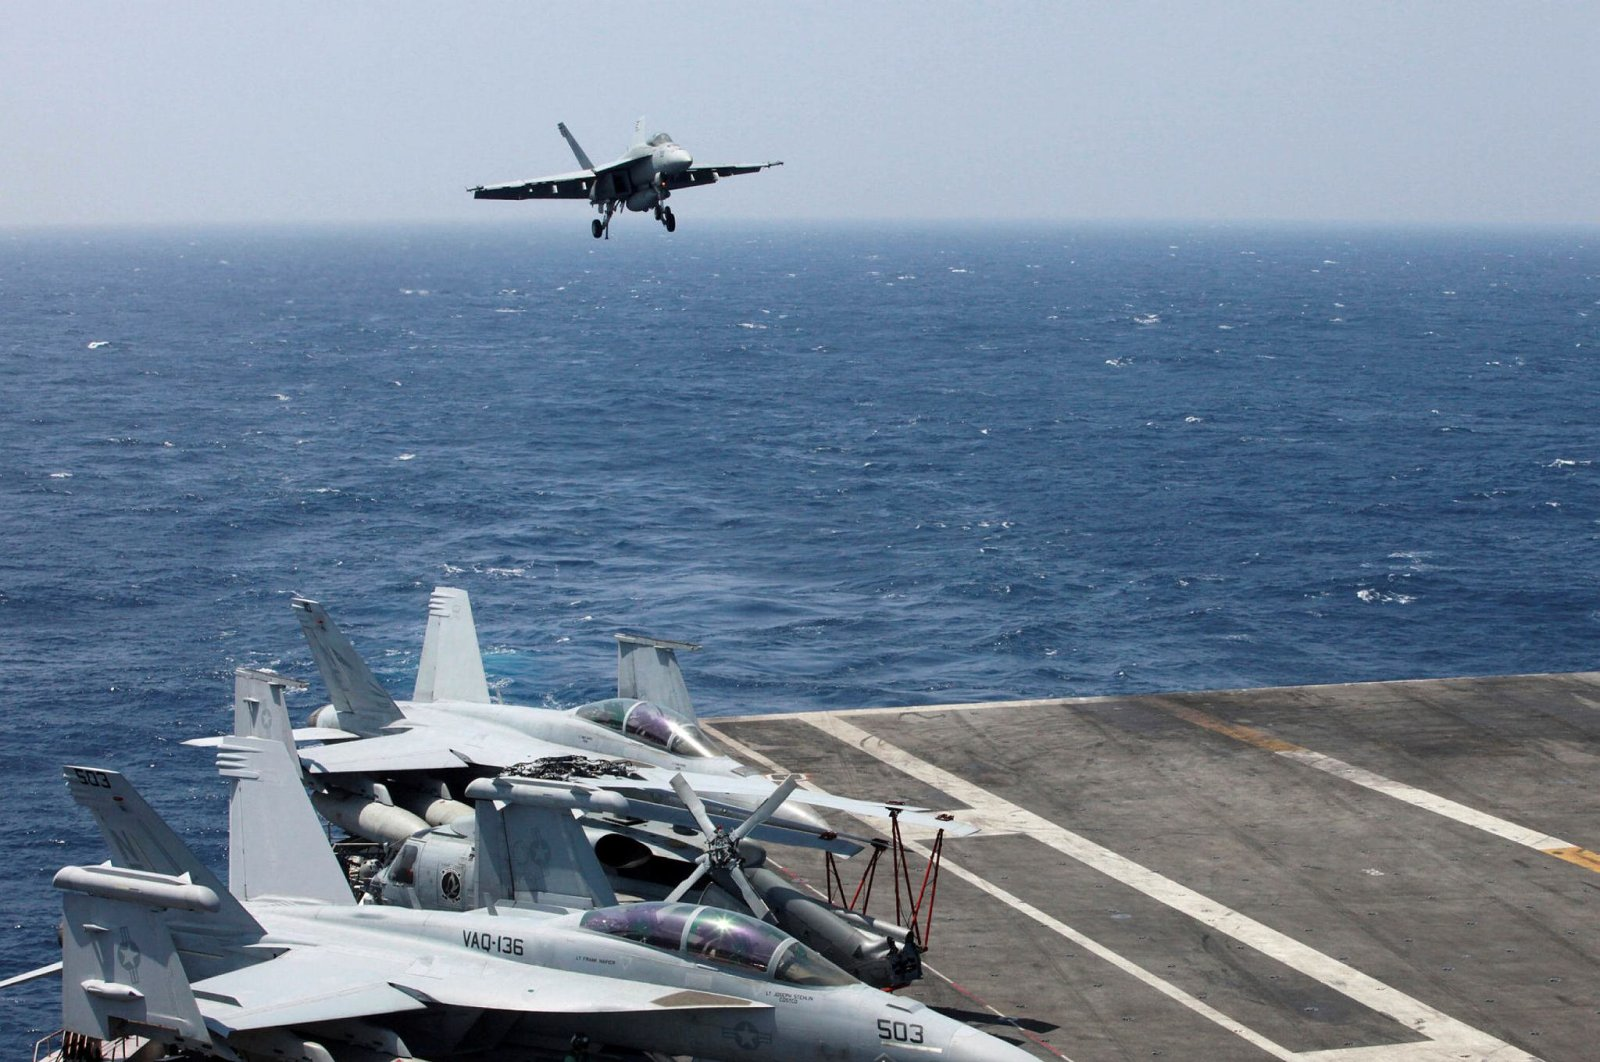 An F-18 fighter jet lands on the U.S Navy aircraft carrier USS Carl Vinson (CVN 70) following a patrol of the disputed South China Sea, March 3, 2017. (AP Photo)